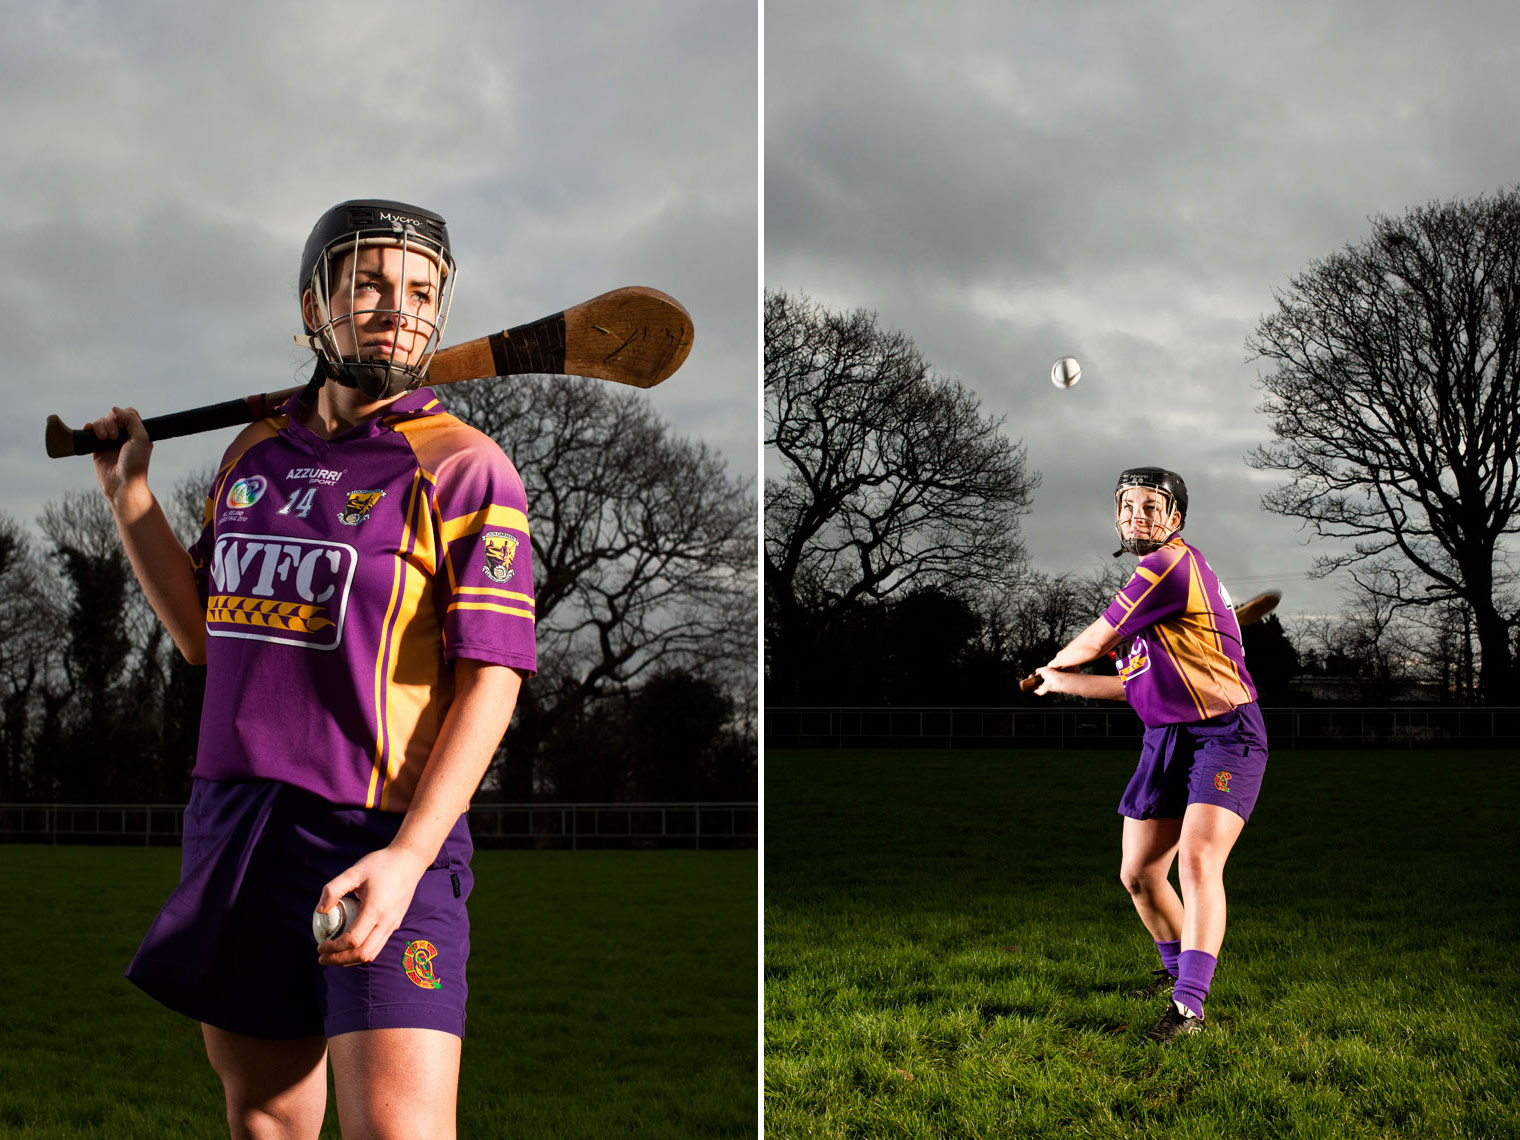 camogie player with hurling stick and helmet